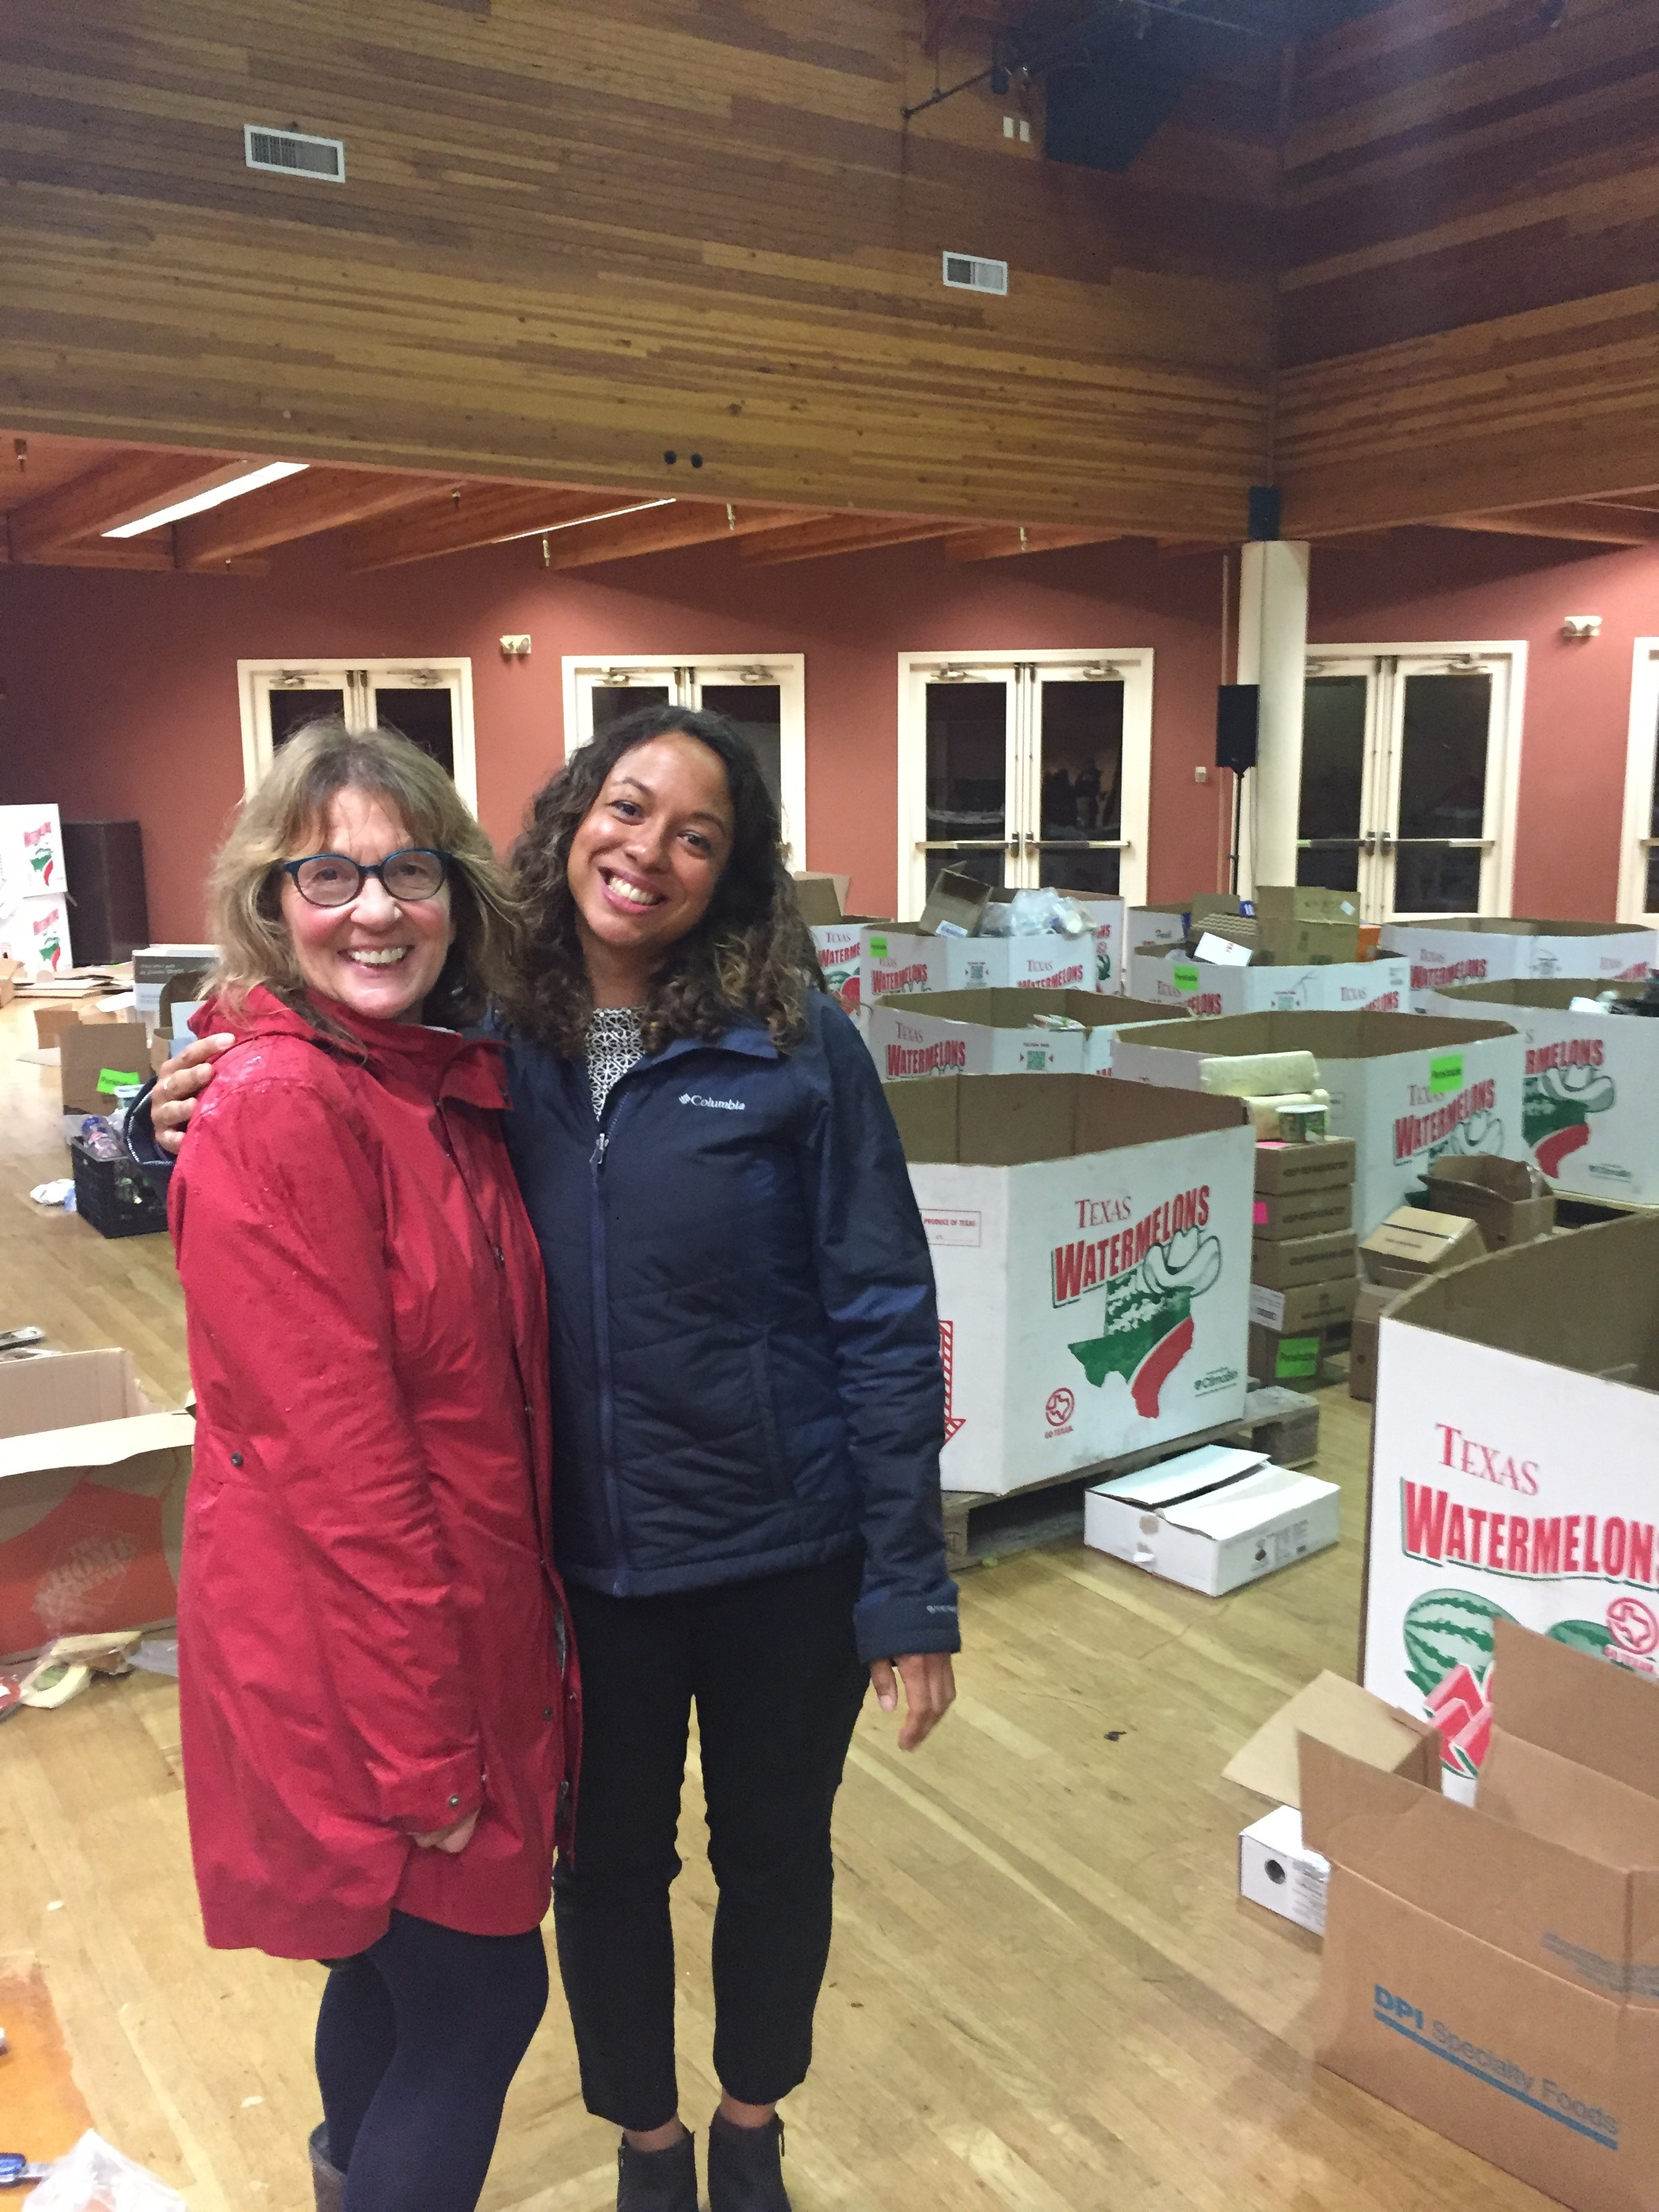 Stephanie Muller, Director of Development at Delancey Street Foundation (left) with Regina Anderson, Executive Director at Food Recovery Network (right) are all smiles as recovered food is delivered and unpacked in the Delancey Street kitchen.